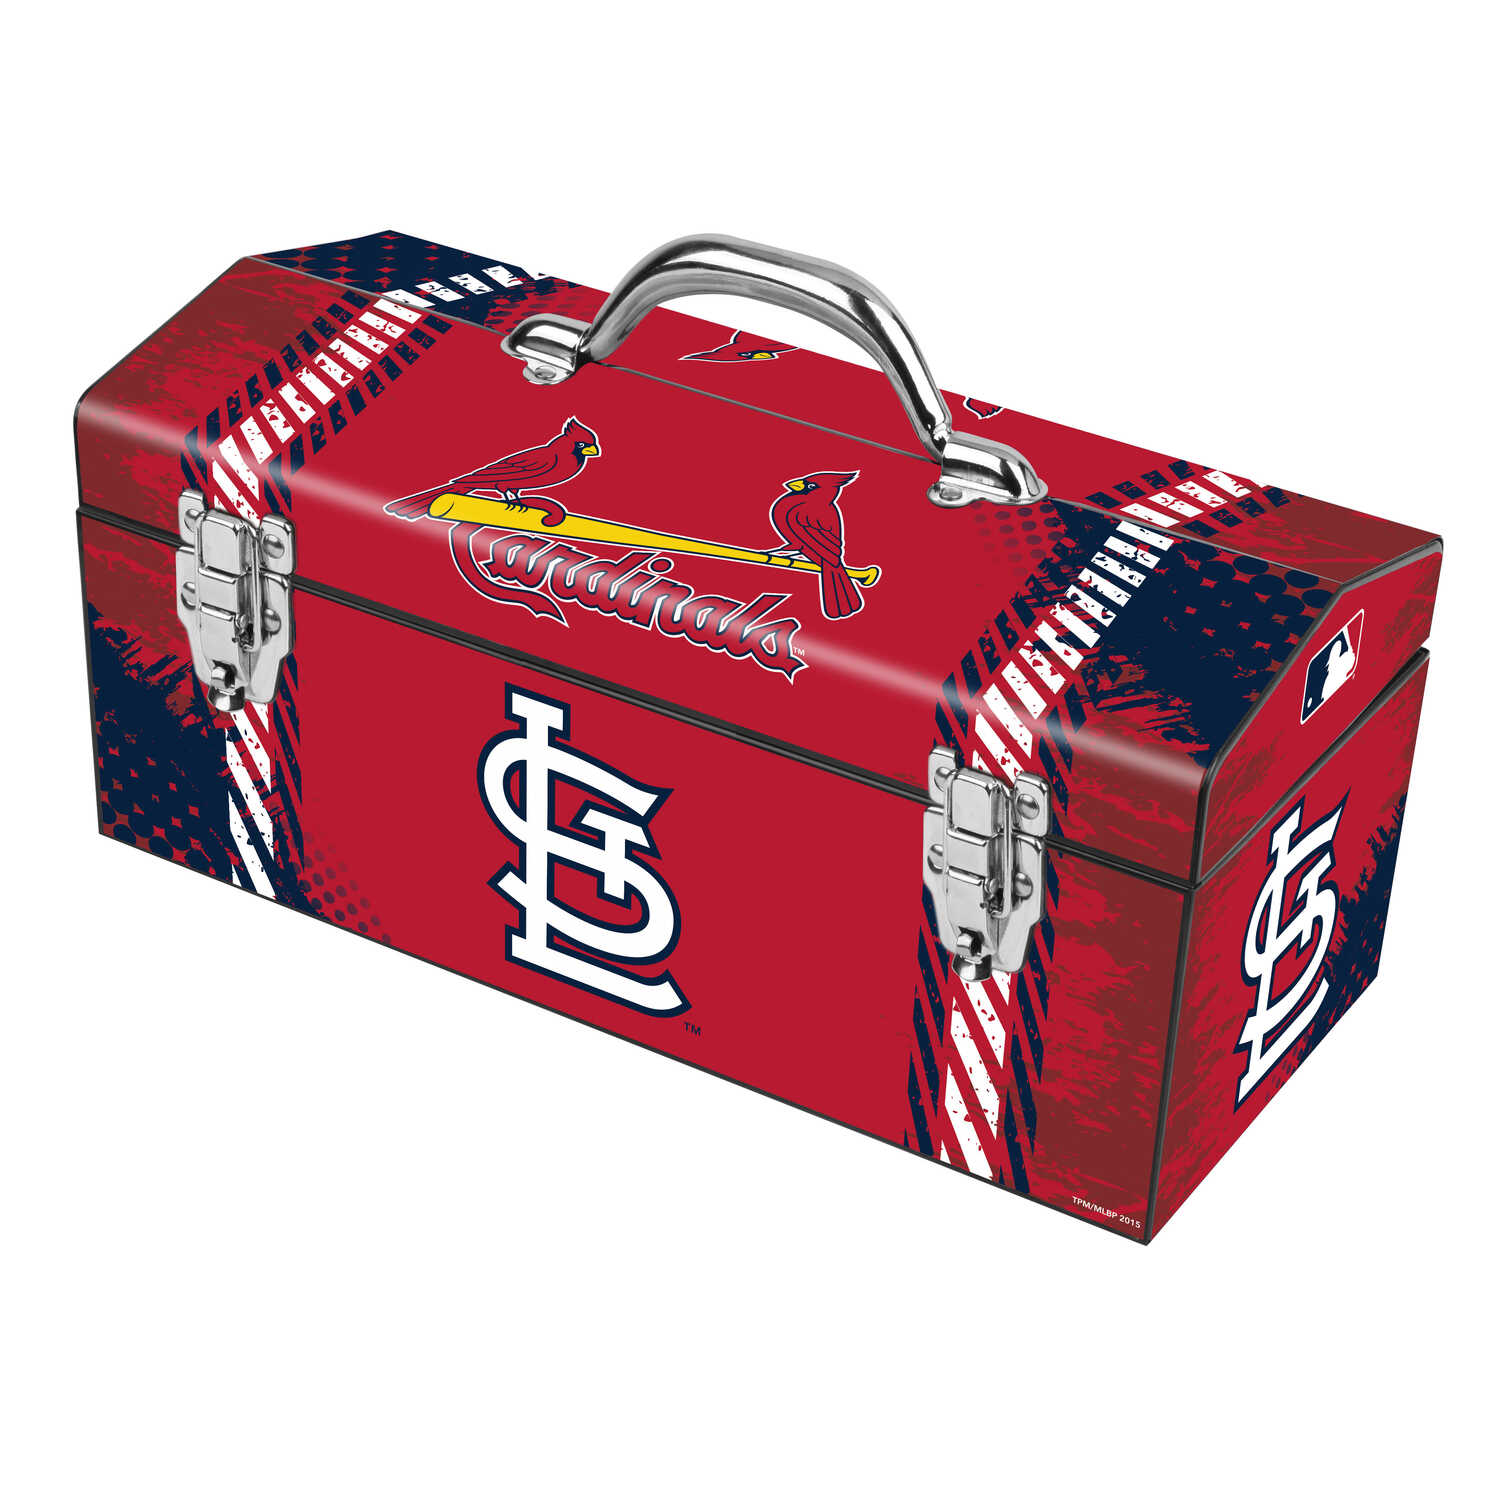 Windco  16.25 in. Steel  St. Louis Cardinals  Art Deco Tool Box  7.1 in. W x 7.75 in. H Blue/Red